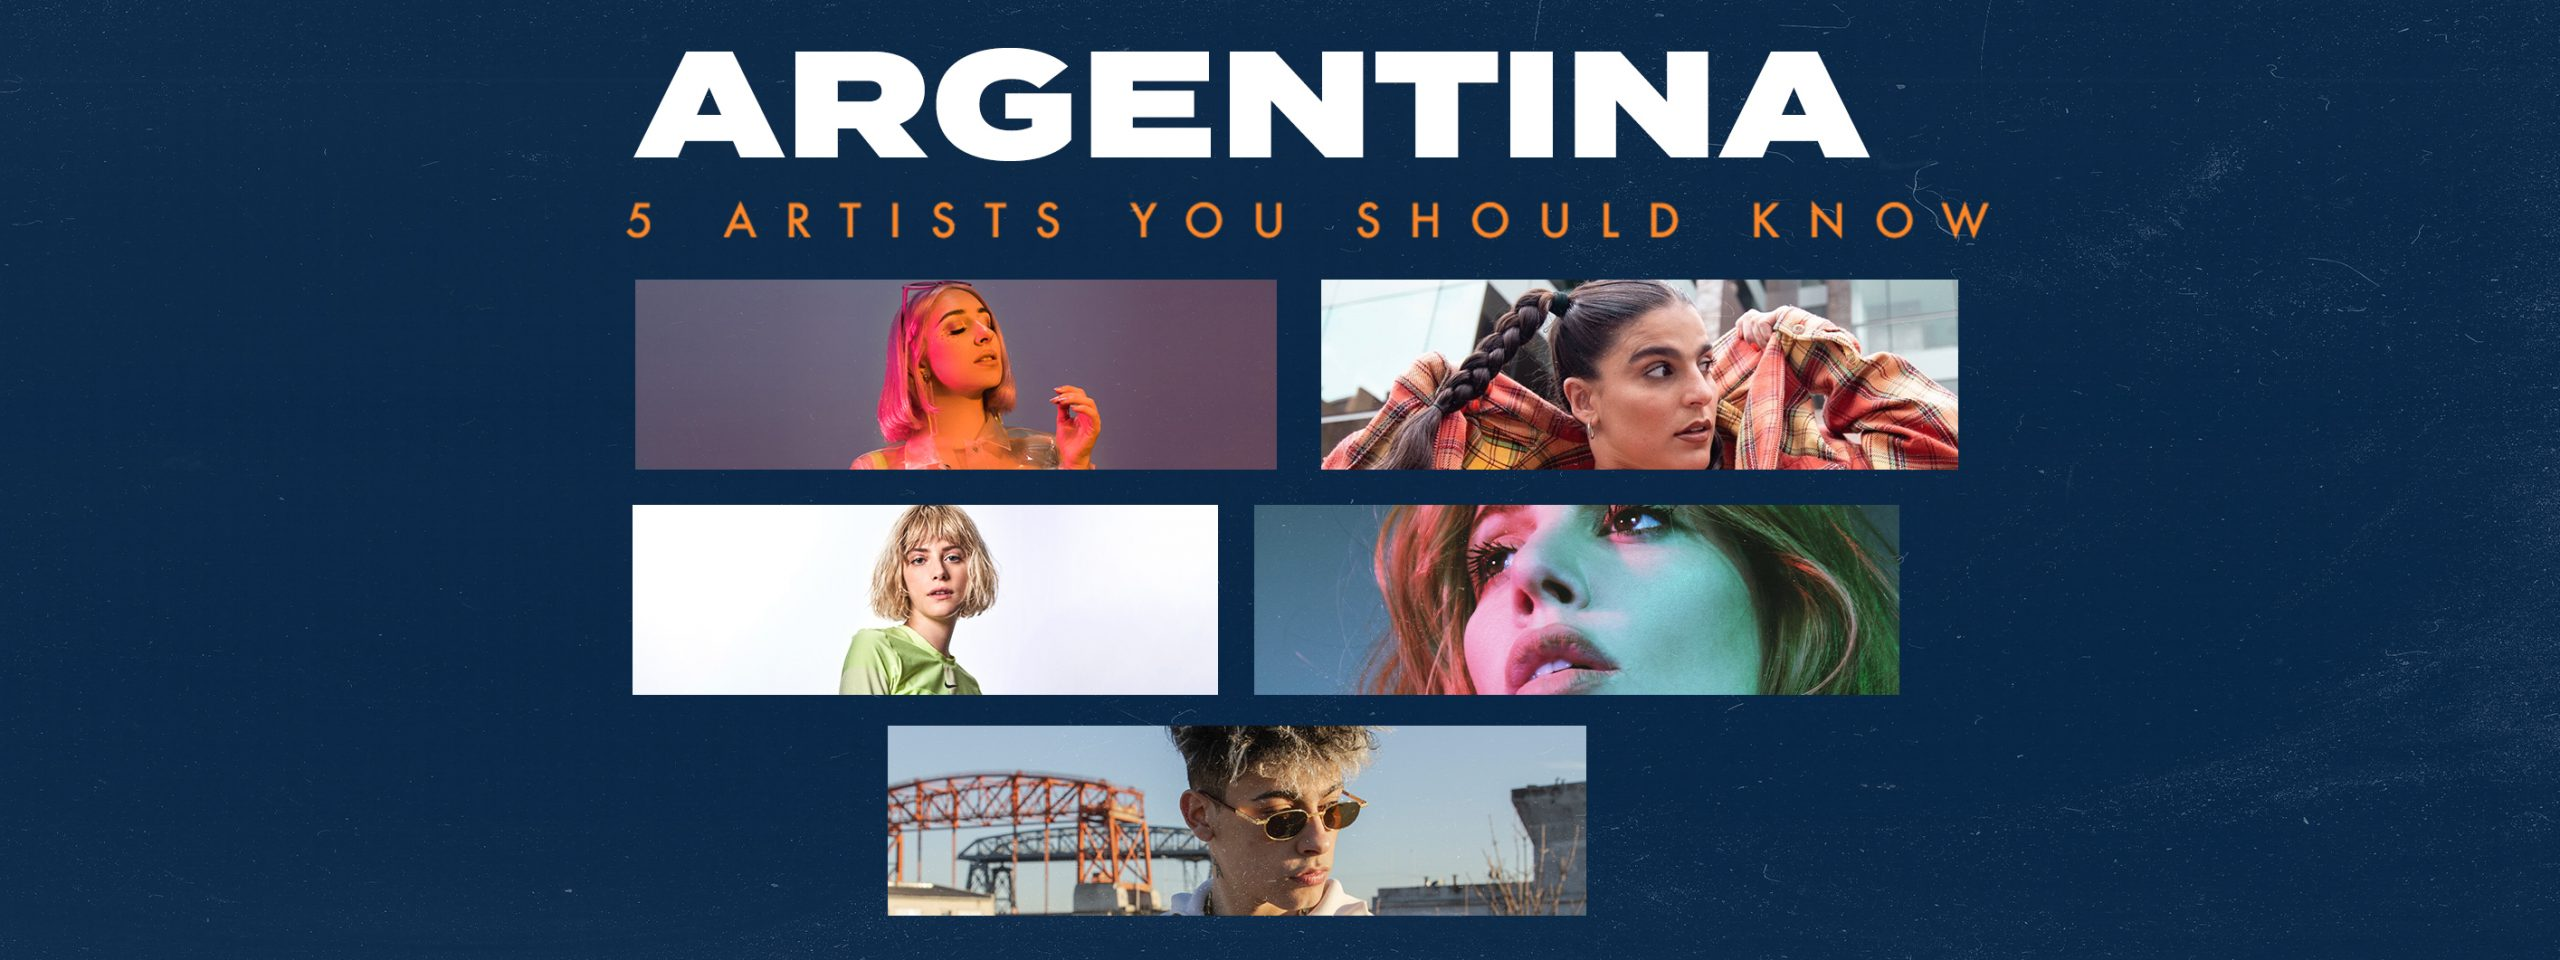 5 Artists You Should Know: Argentina